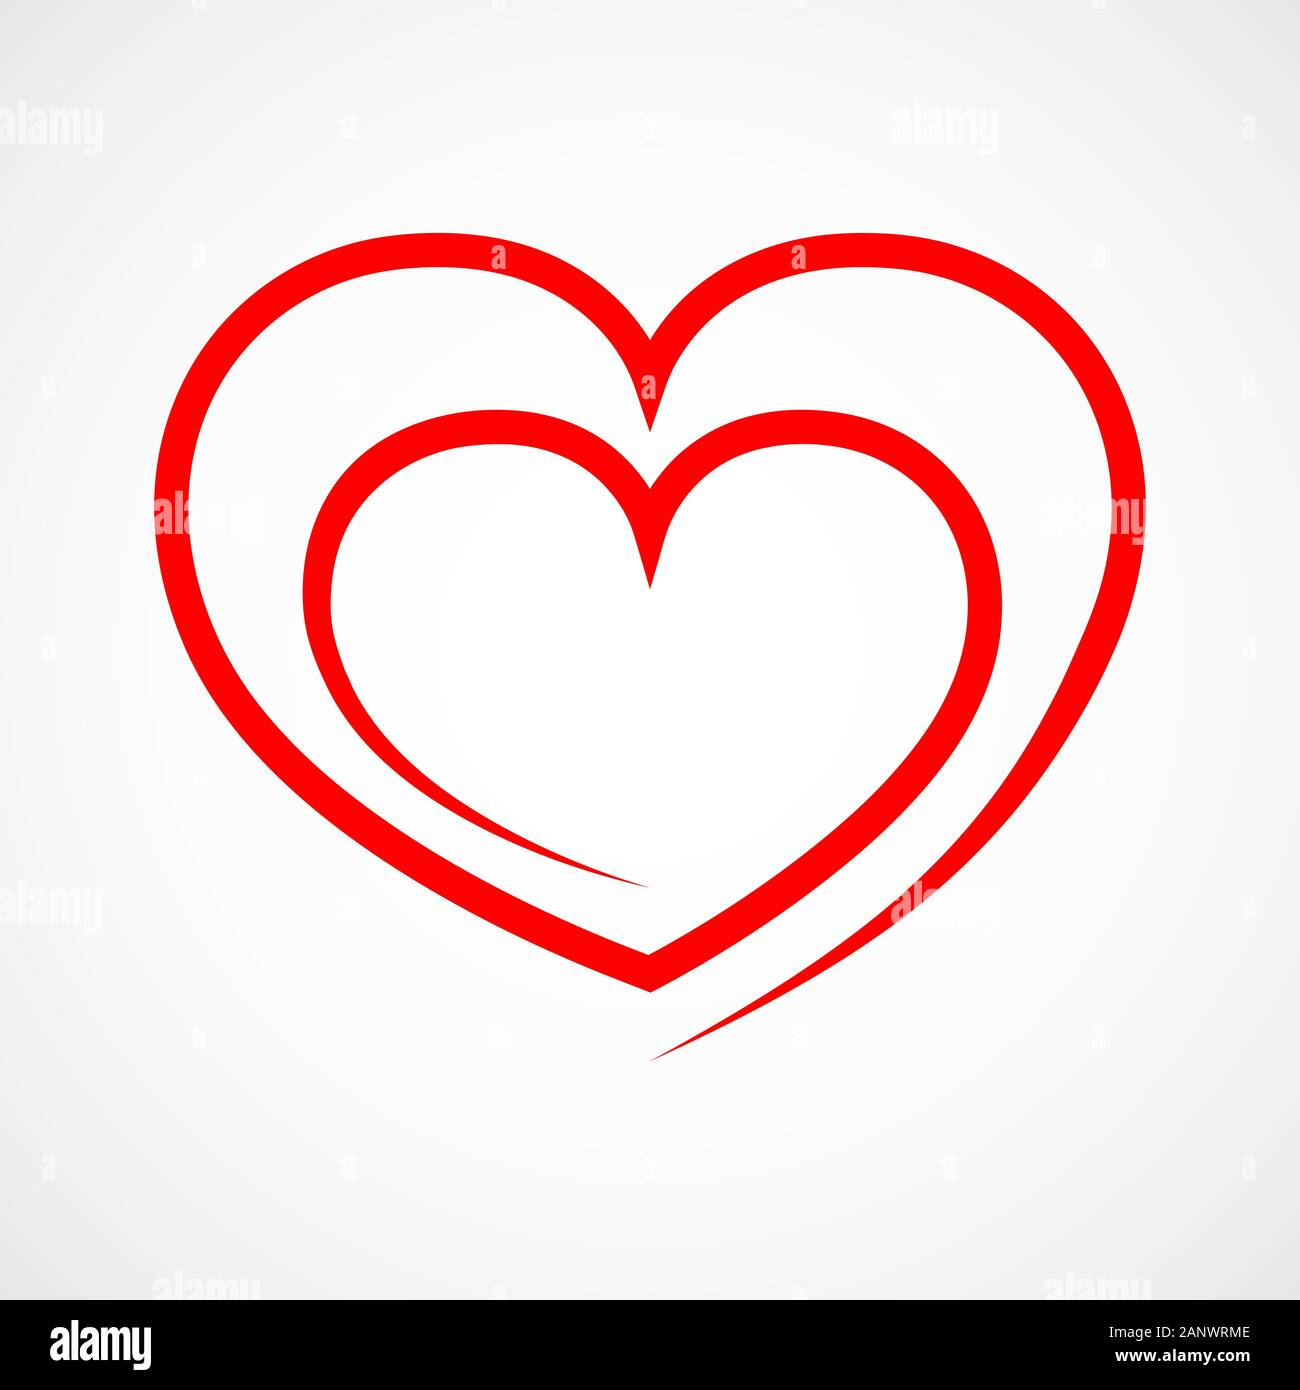 Abstract Heart Shape Outline Vector Illustration Red Heart Icon In Flat Style The Heart As A Symbol Of Love Stock Vector Image Art Alamy